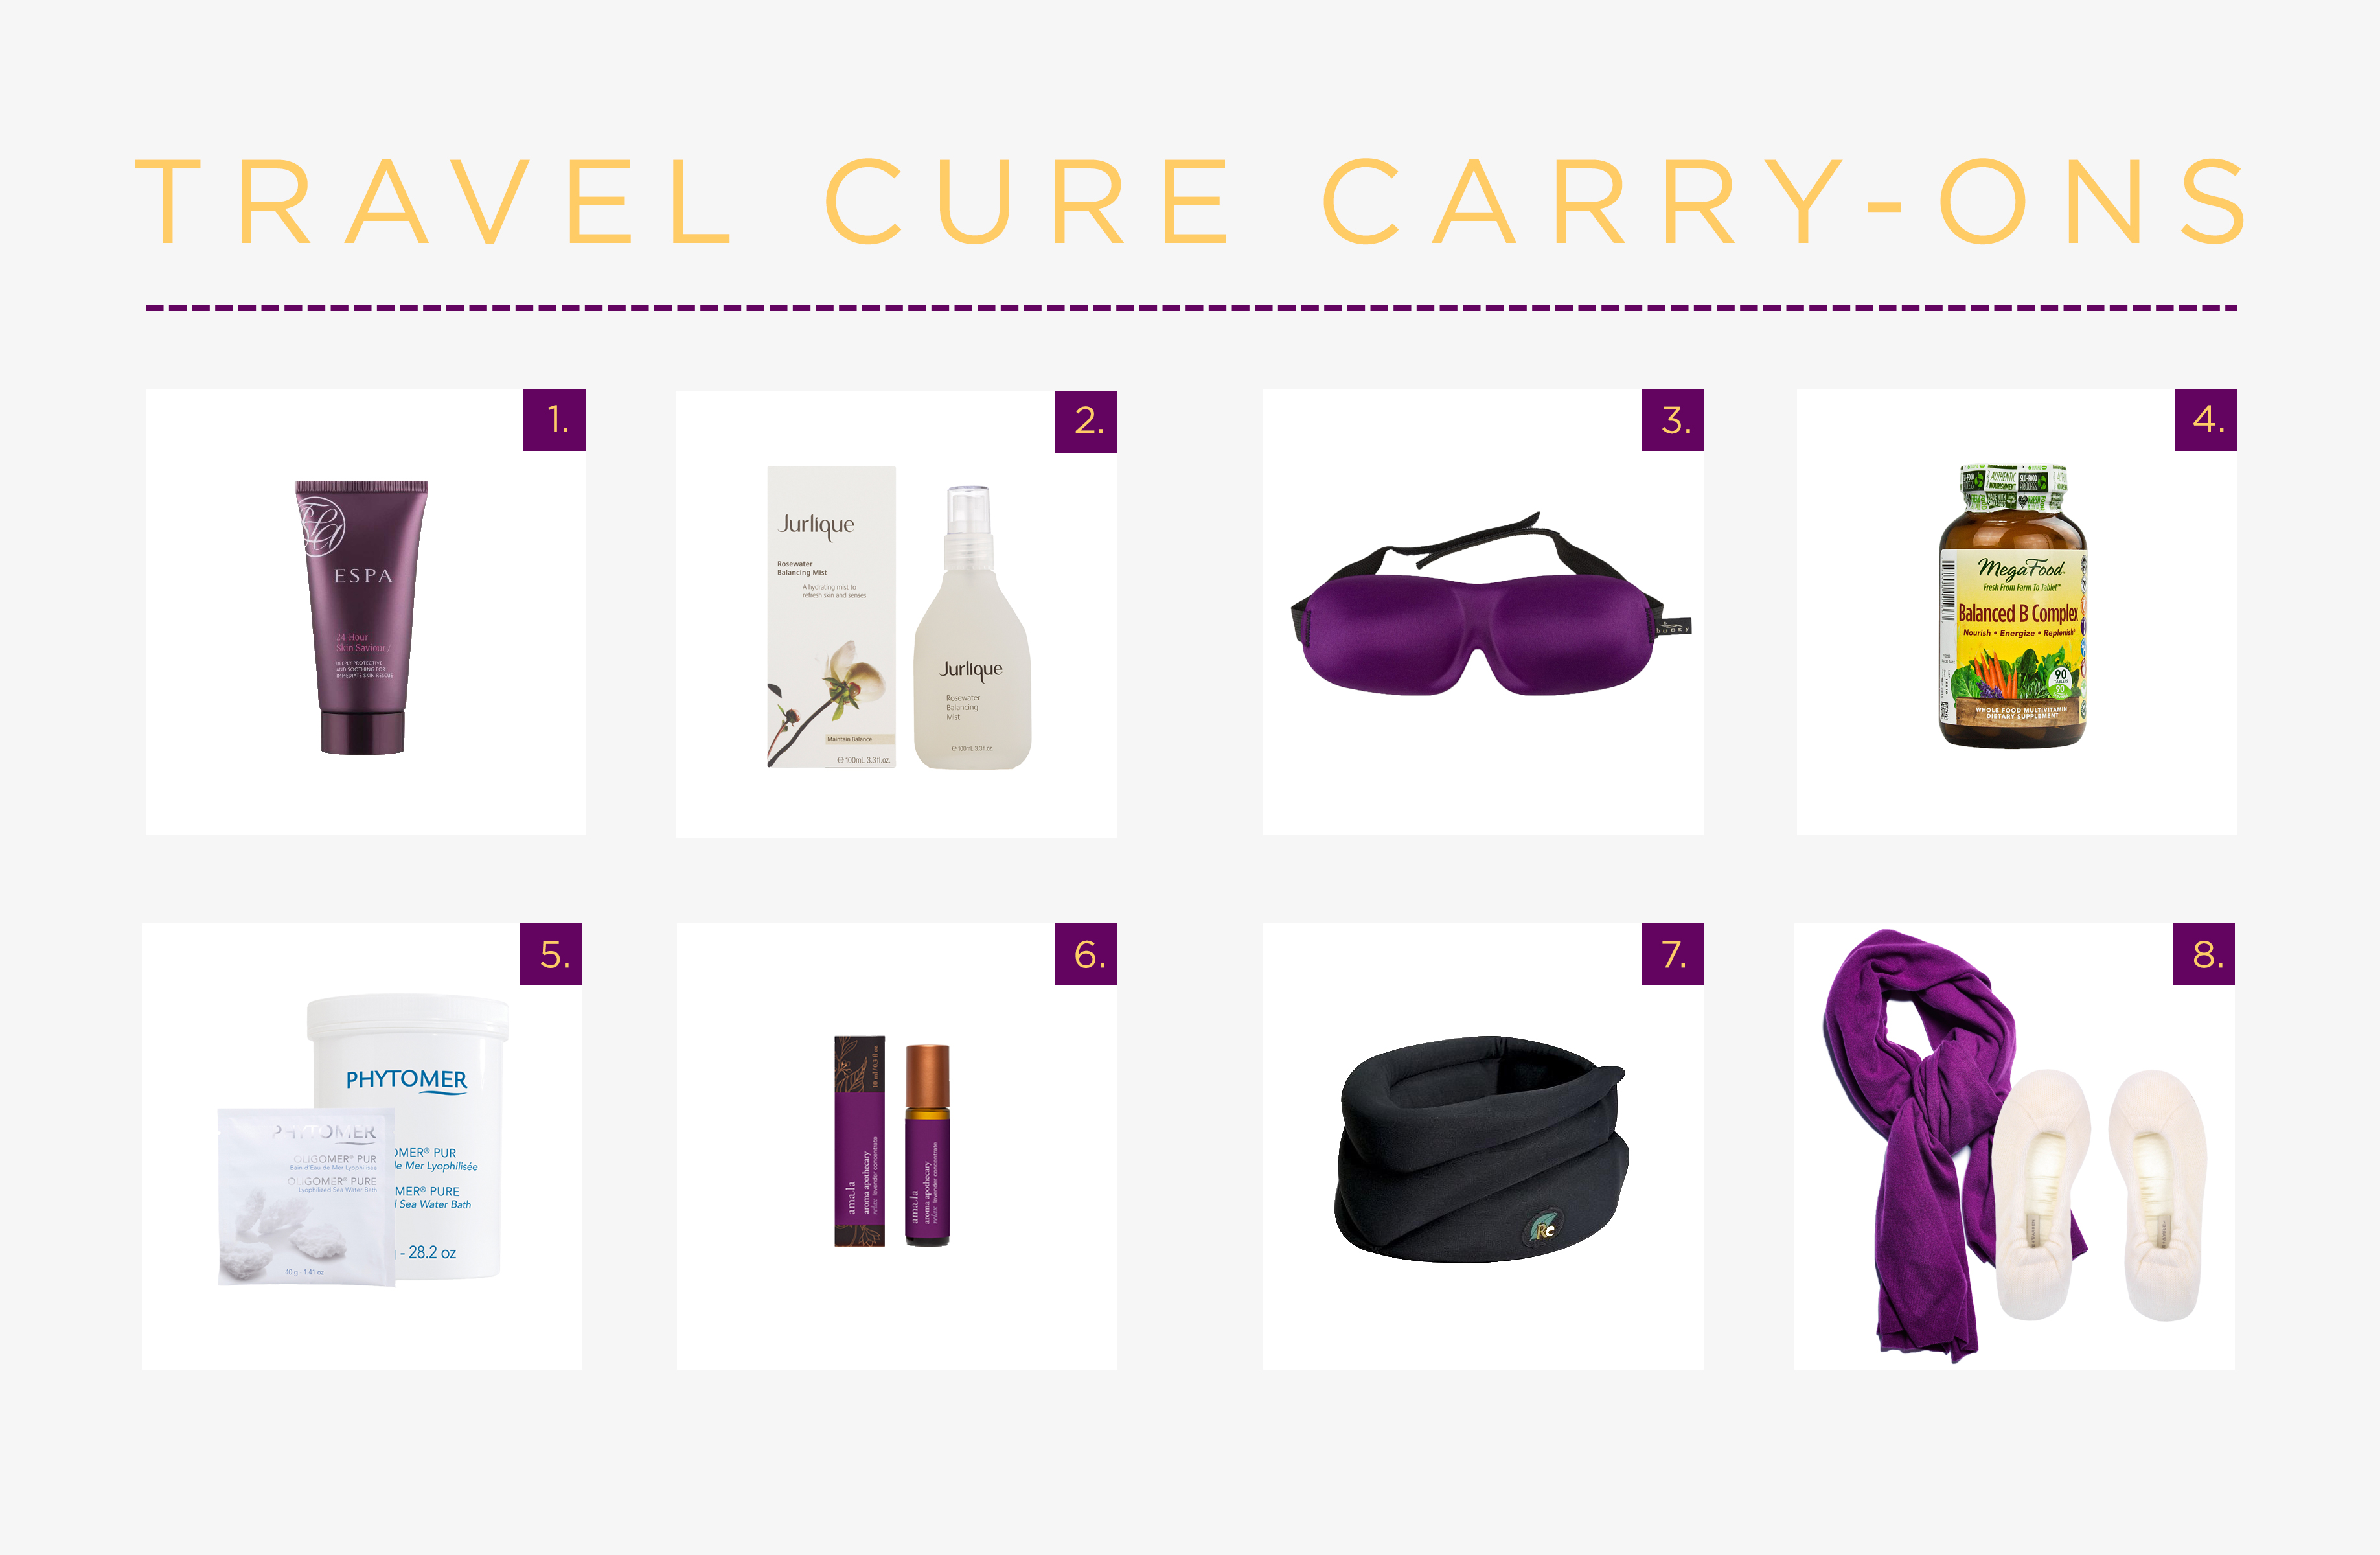 Travel Cure Carry-Ons